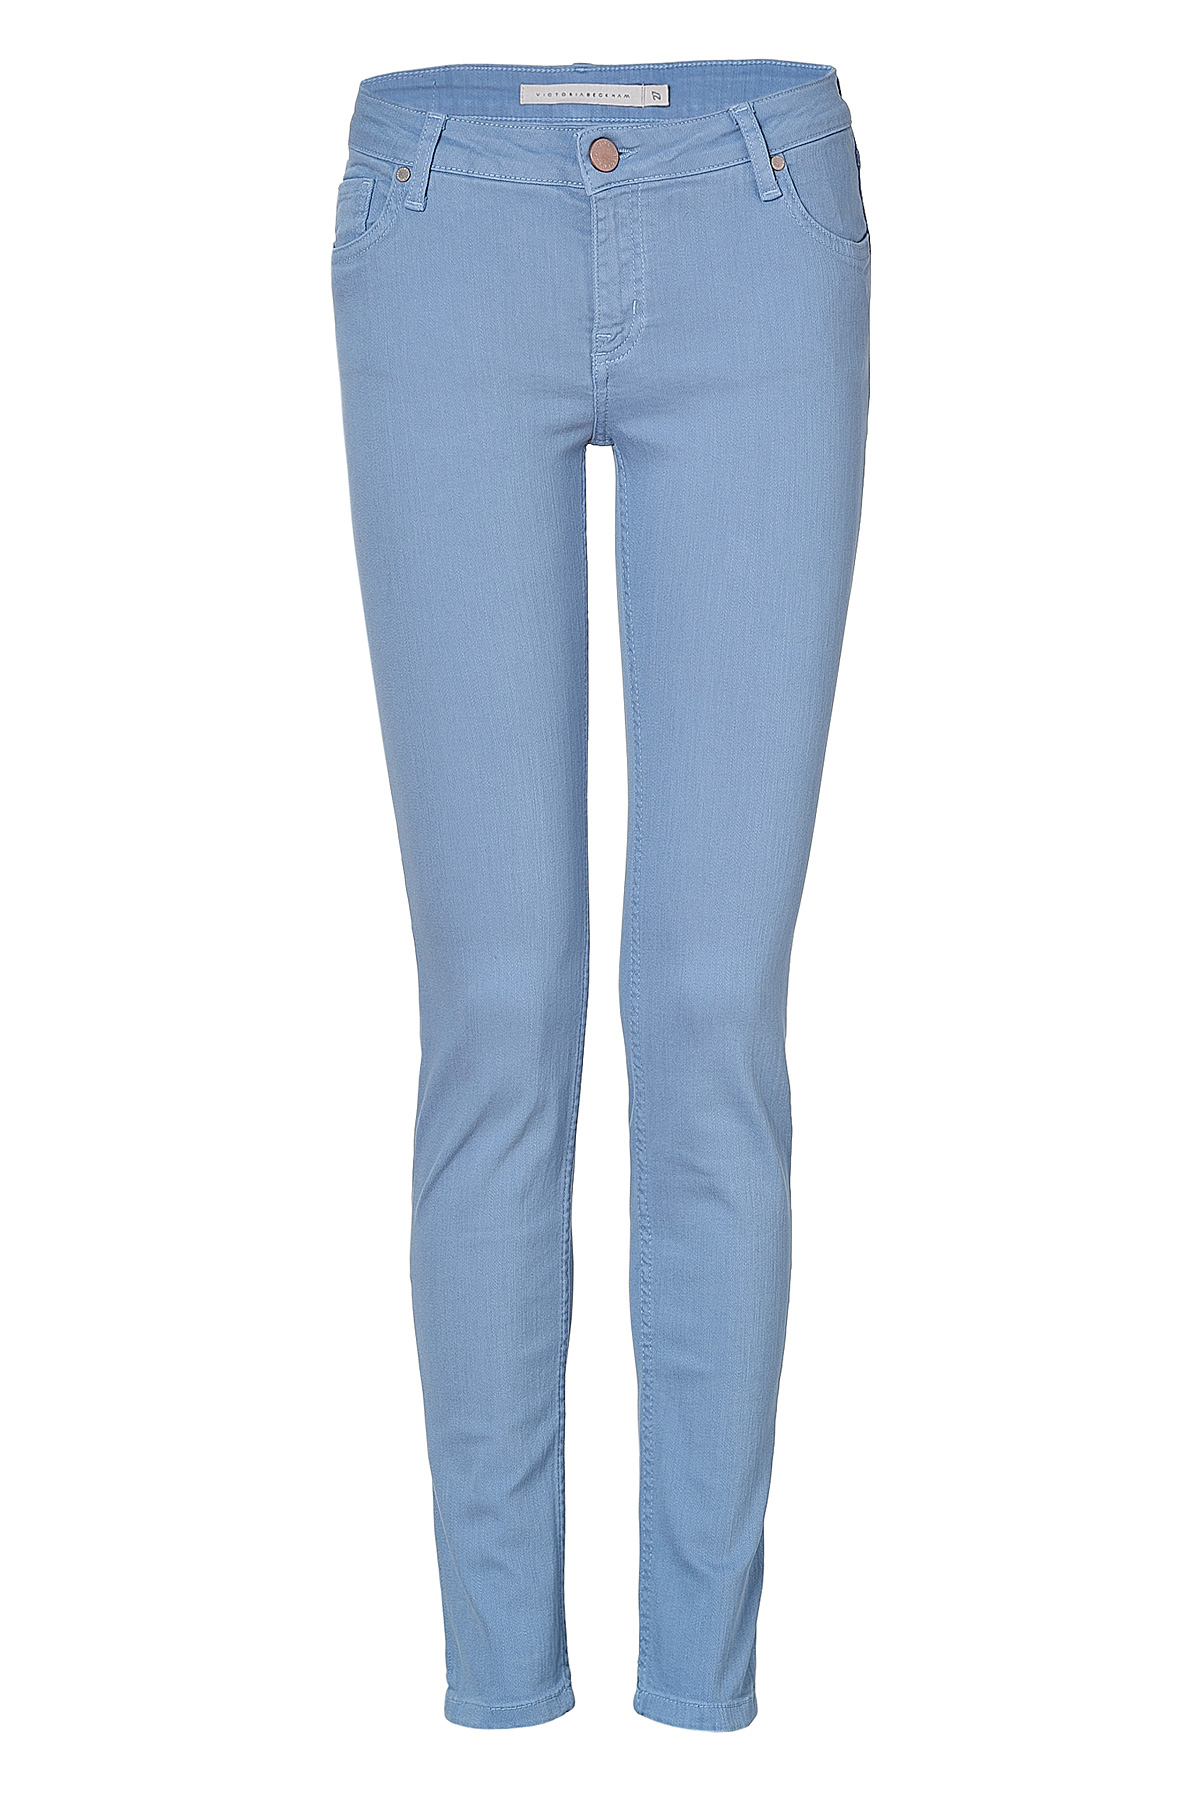 lyst victoria beckham sky chambray power skinny jeans in blue. Black Bedroom Furniture Sets. Home Design Ideas